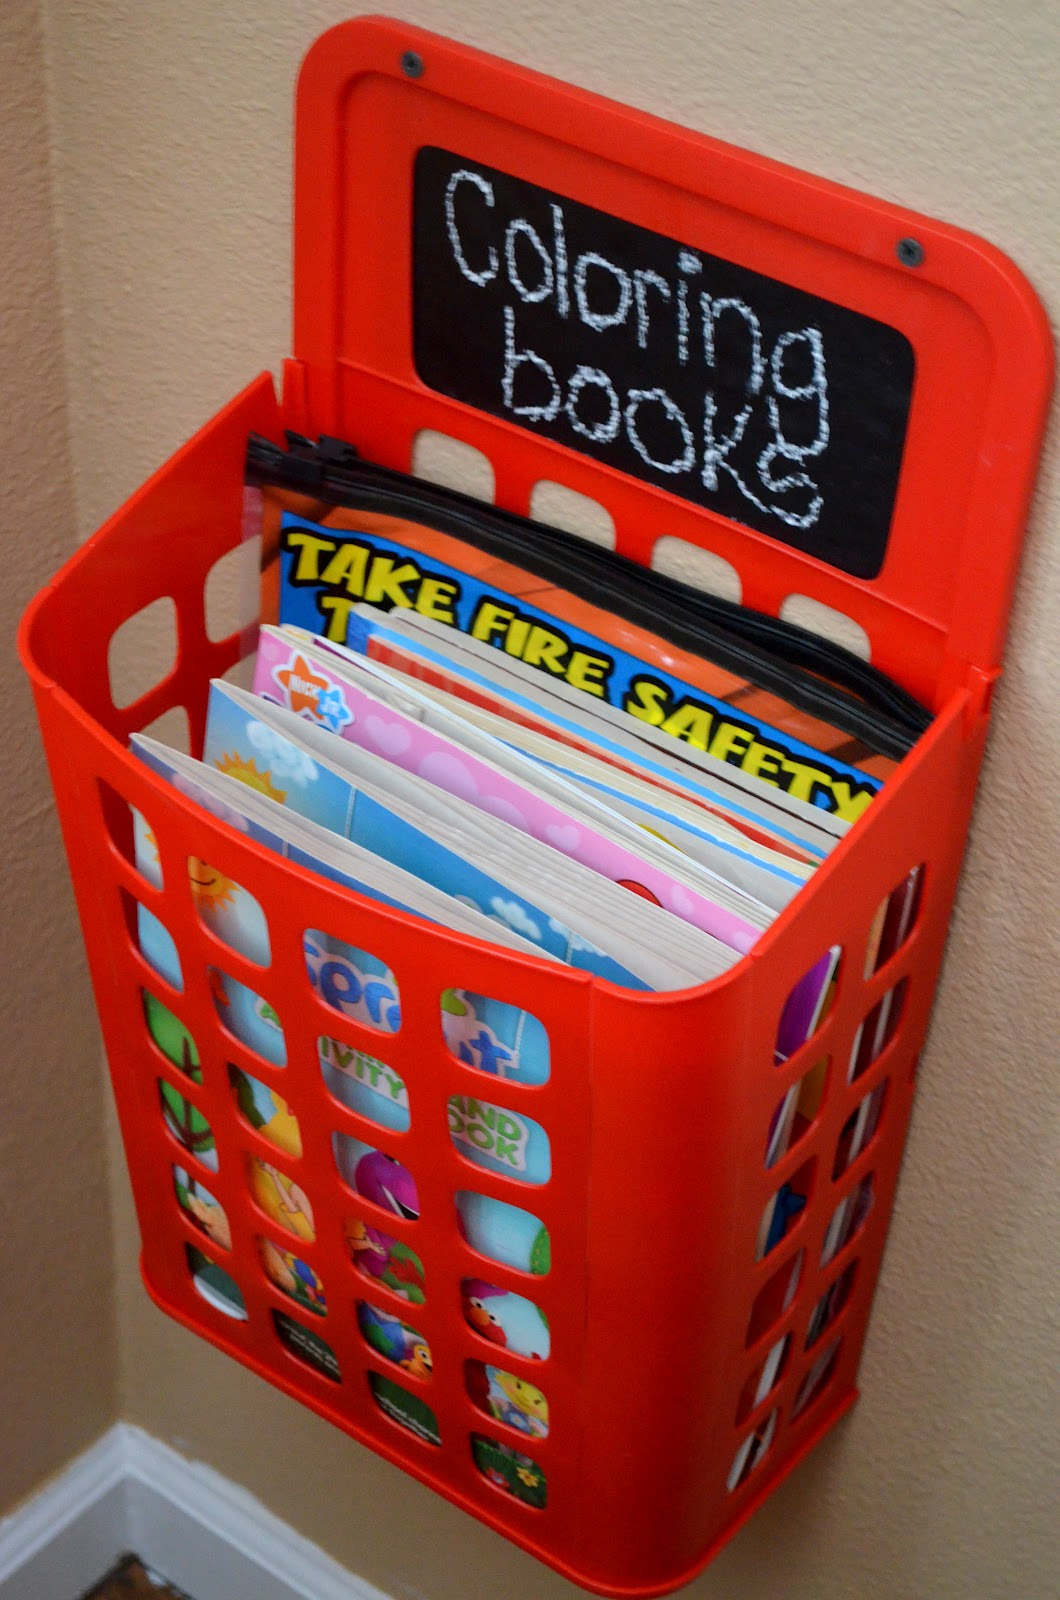 Our New Playroom Tour Organizing The Kid Clutter IKEA Garbage Bin With Cute Chalkboard Label Added To Hold Books Along Lots Of Other Great Play